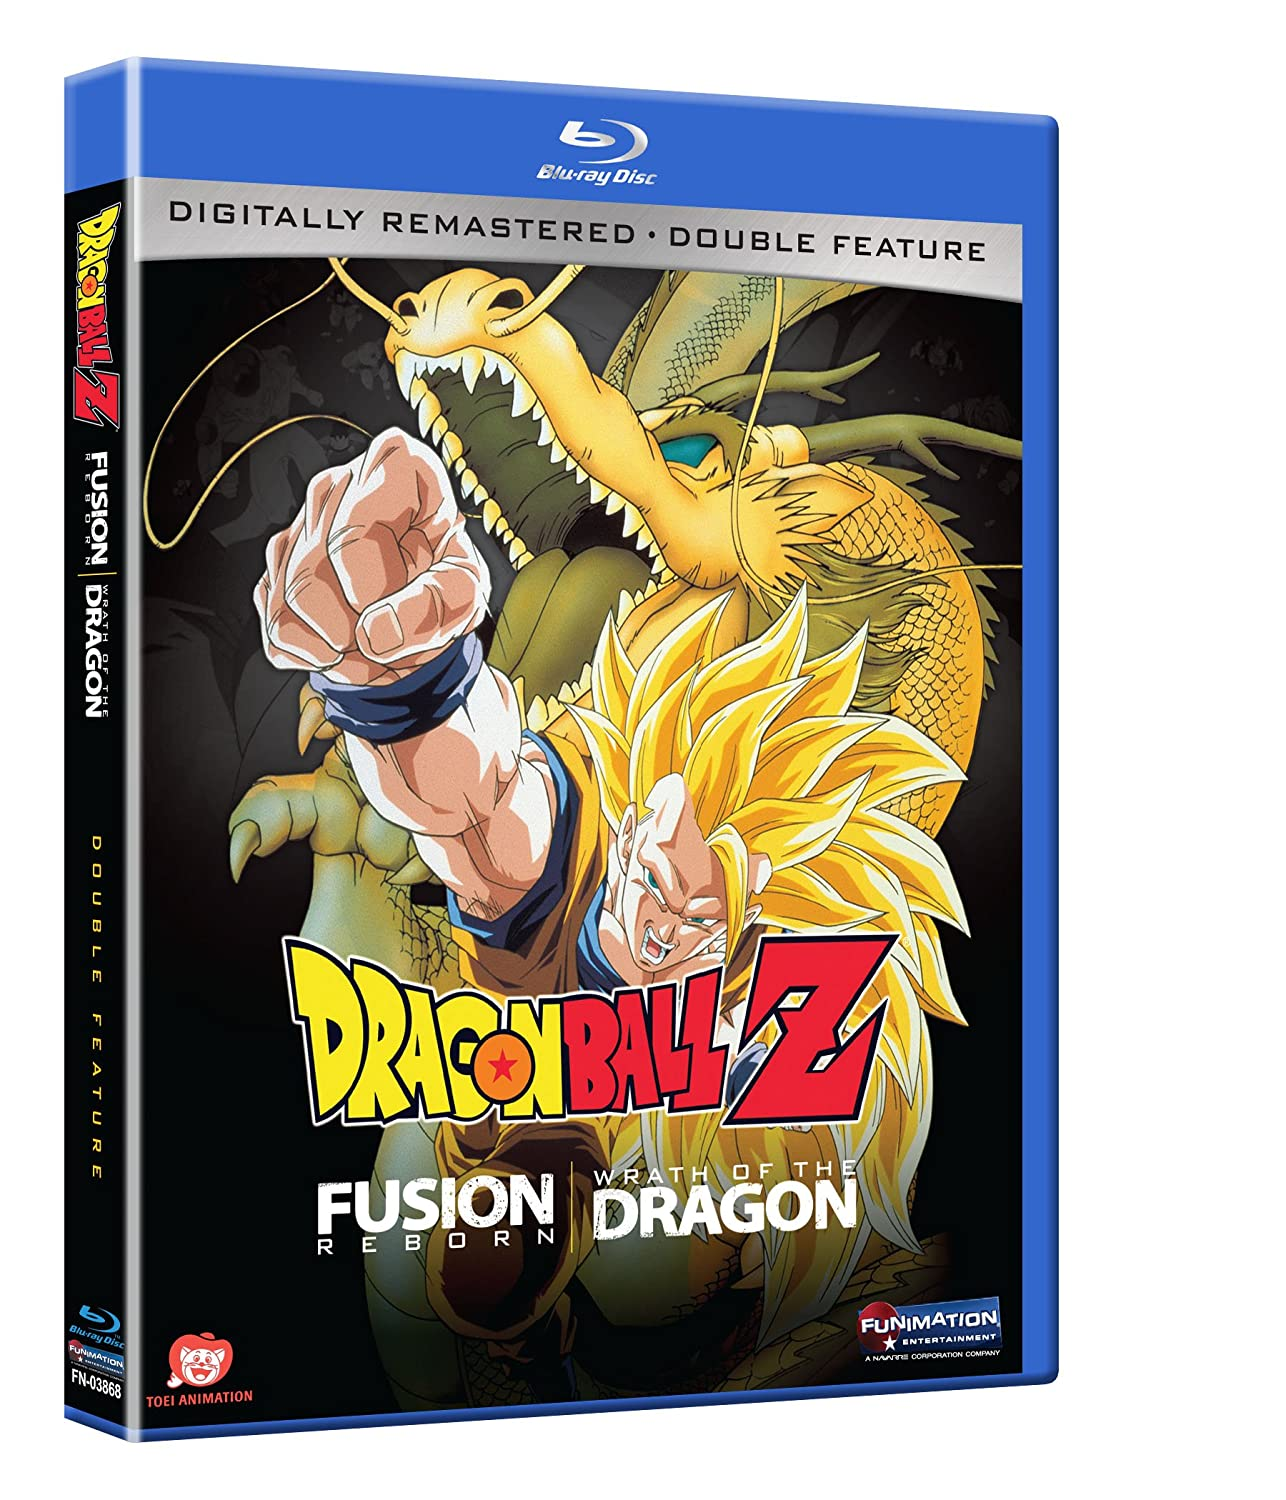 Dragon Ball Z: Movie Double Feature [Blu-ray] Not Available Funimation! Unidisc 5215162 Anime / Japanimation